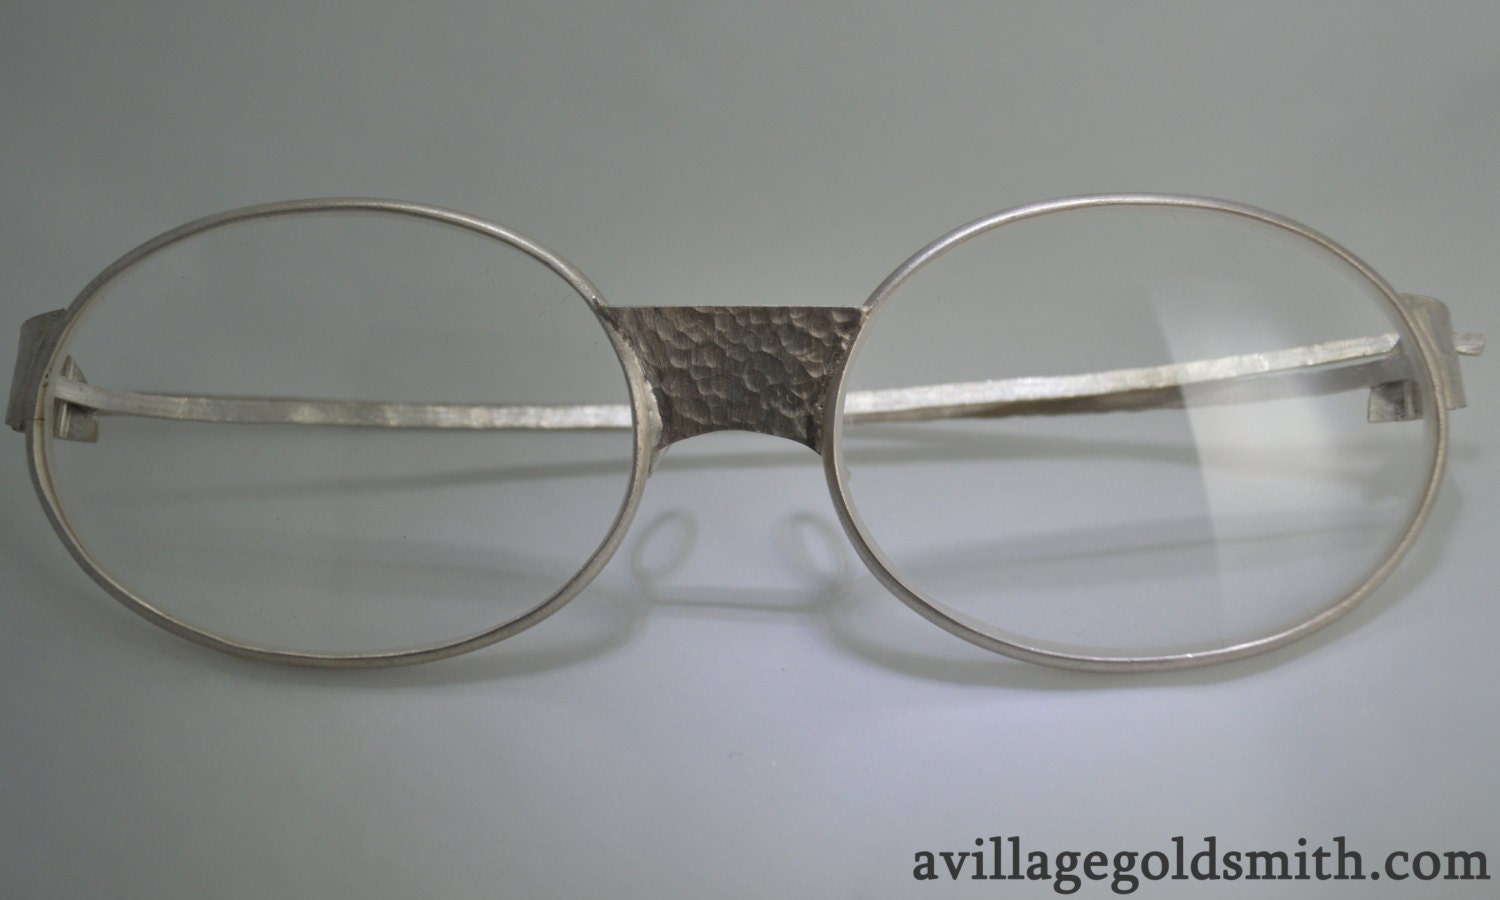 Eyeglass Frames Made In The Usa : Sterling Silver Eyeglasses Made in the USA by VillageGoldsmith